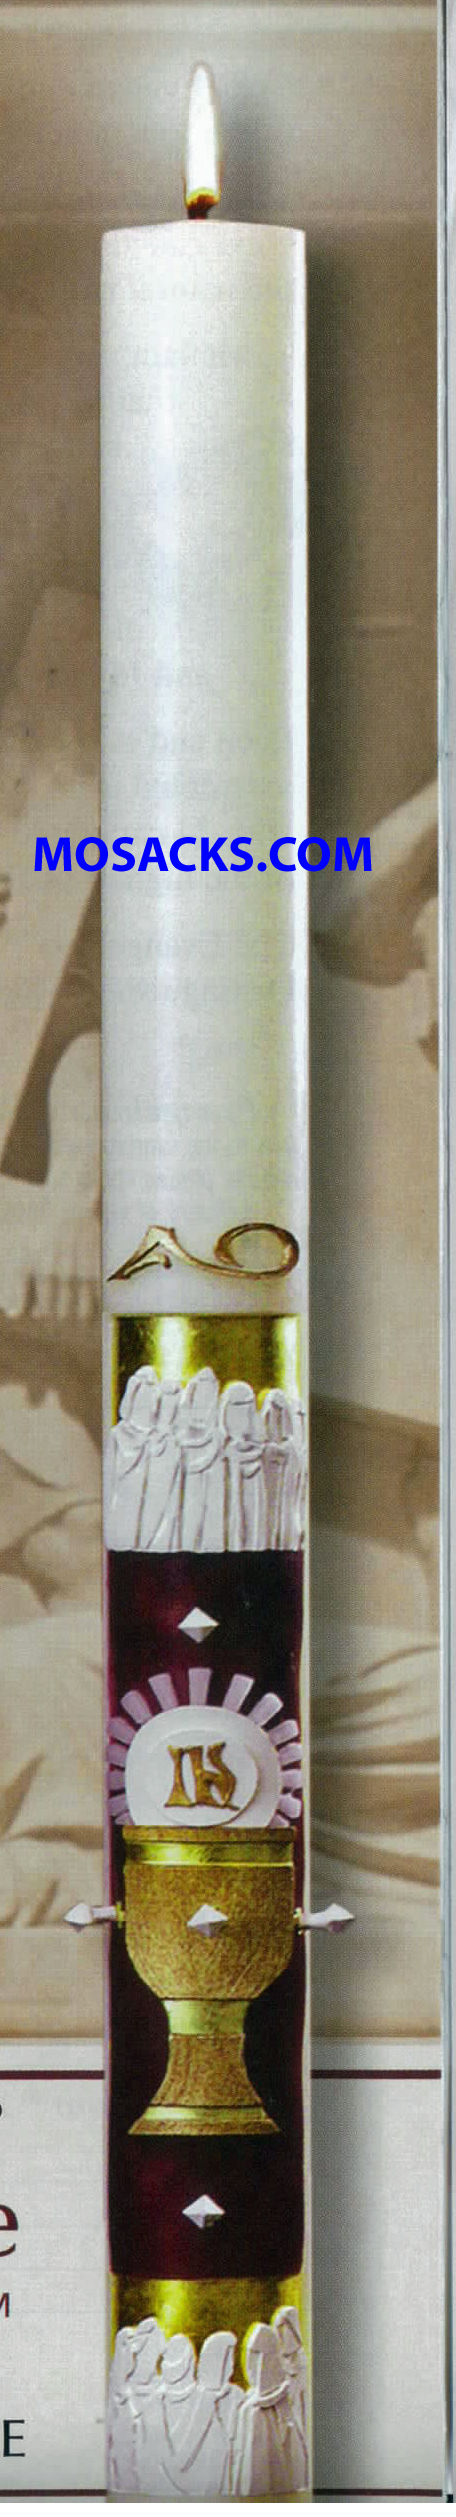 eximious® 51% Beeswax Paschal Candle The Twelve Apostles™ by Cathedral Candle